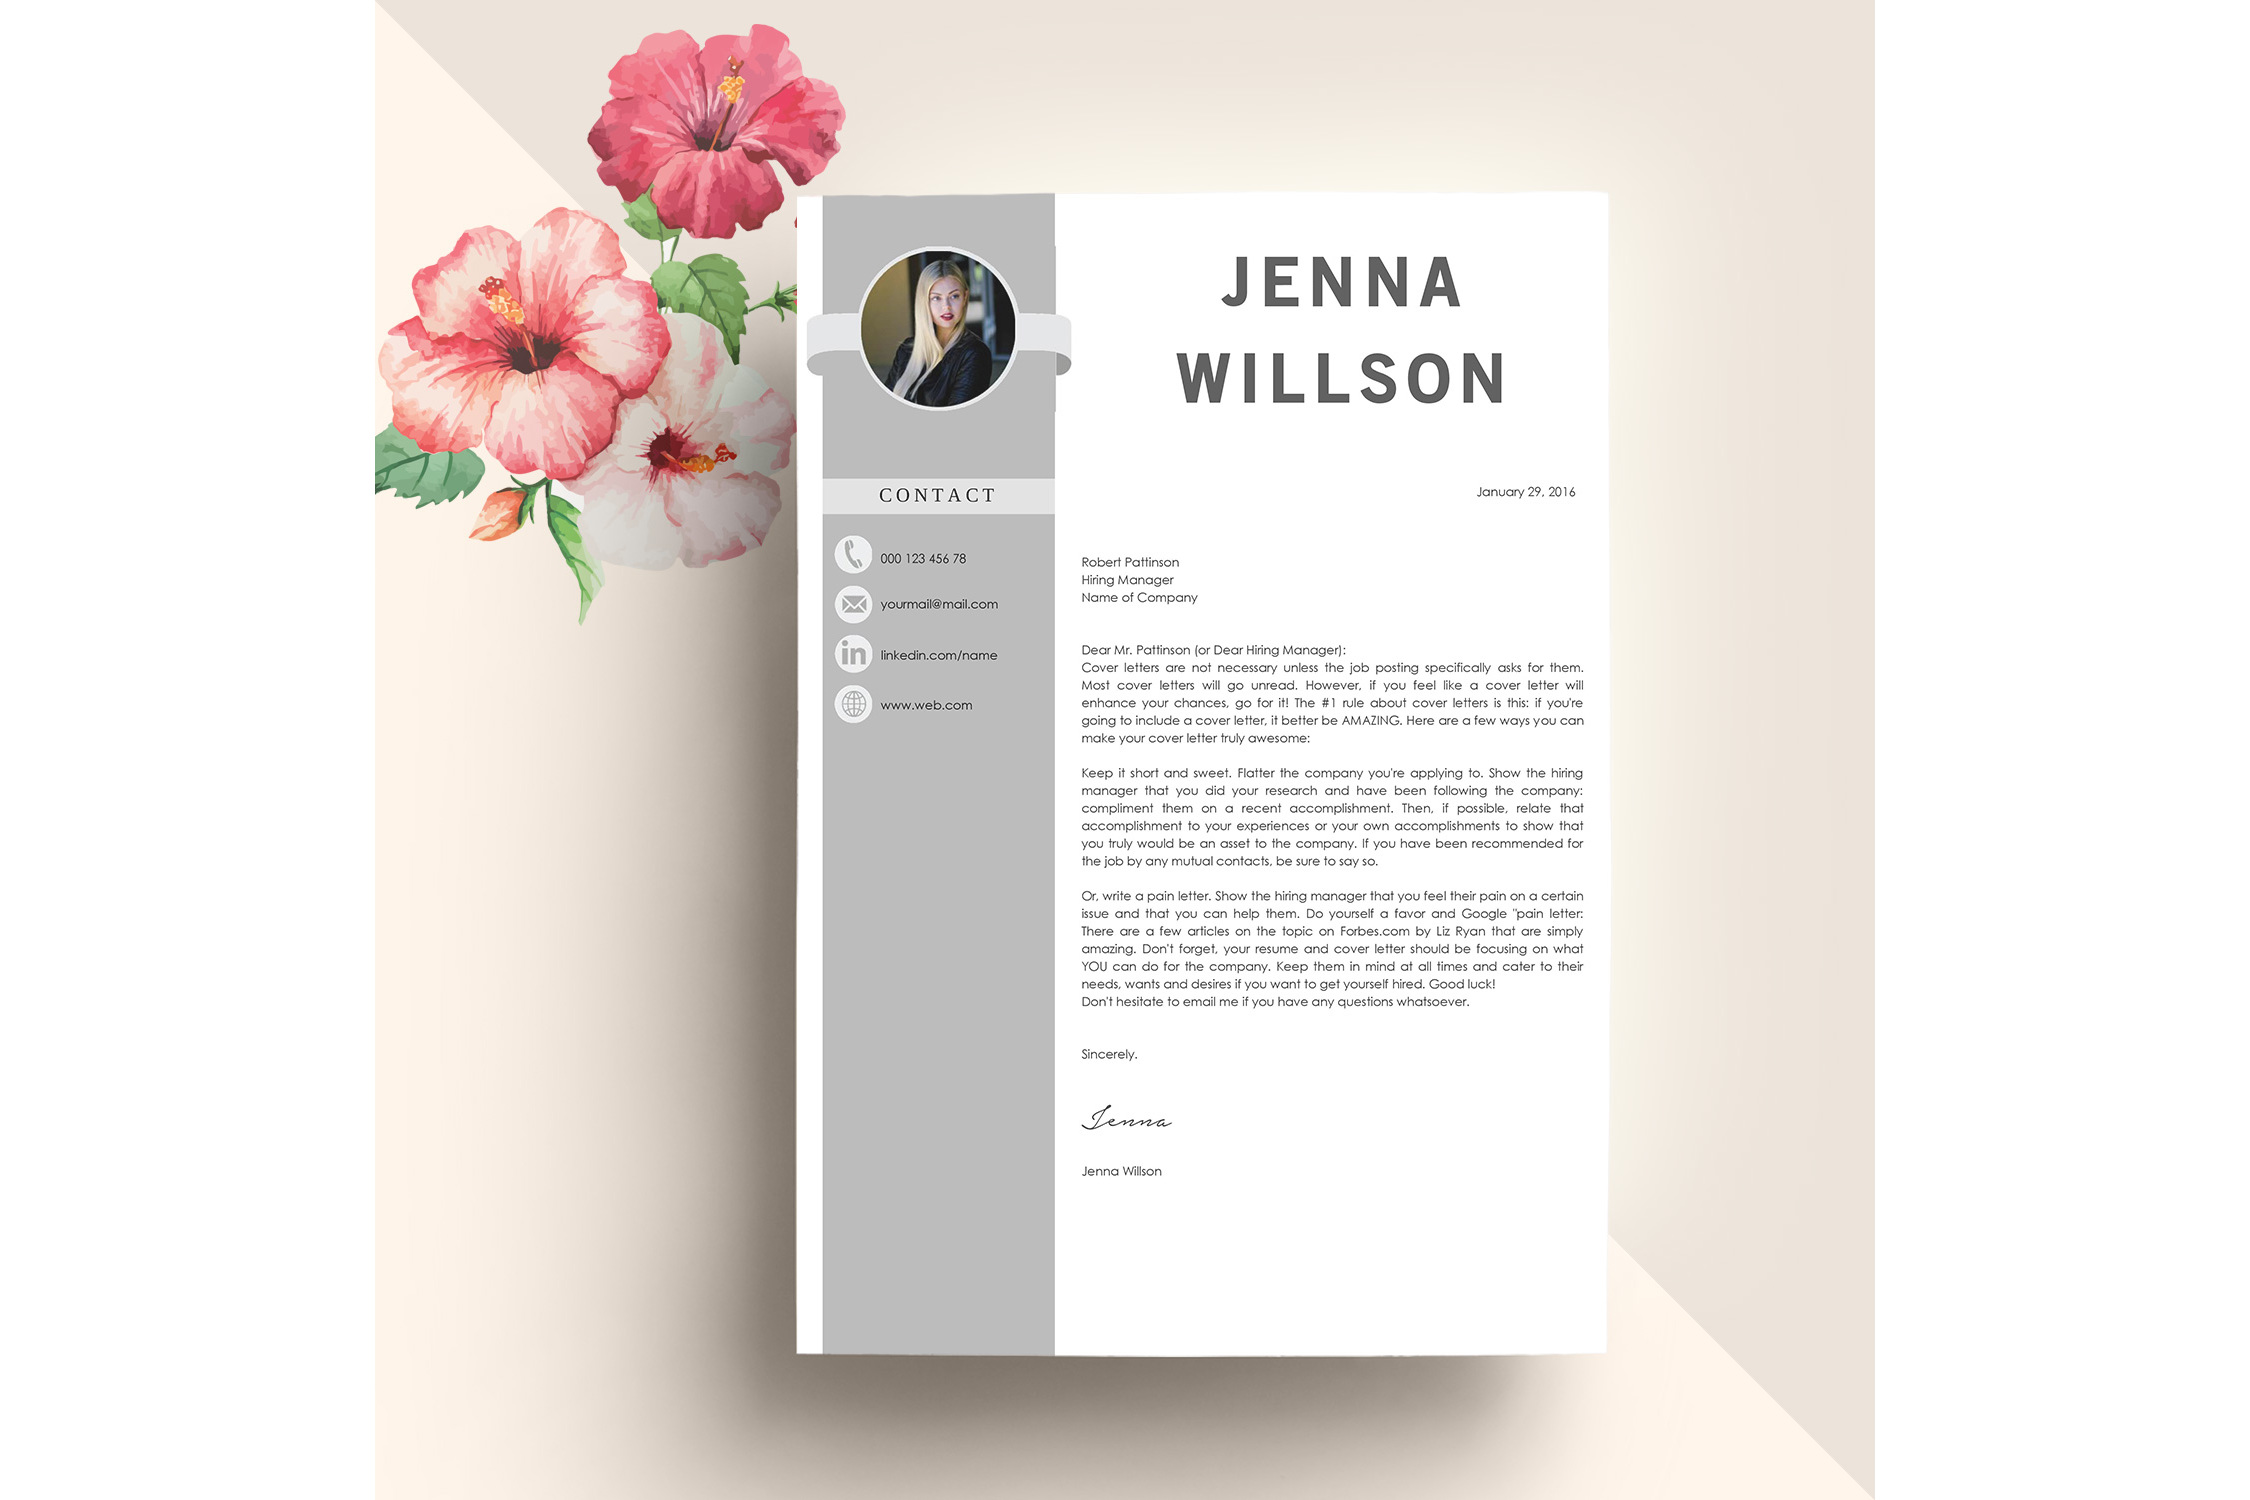 Professonal Resume Template Word example image 3